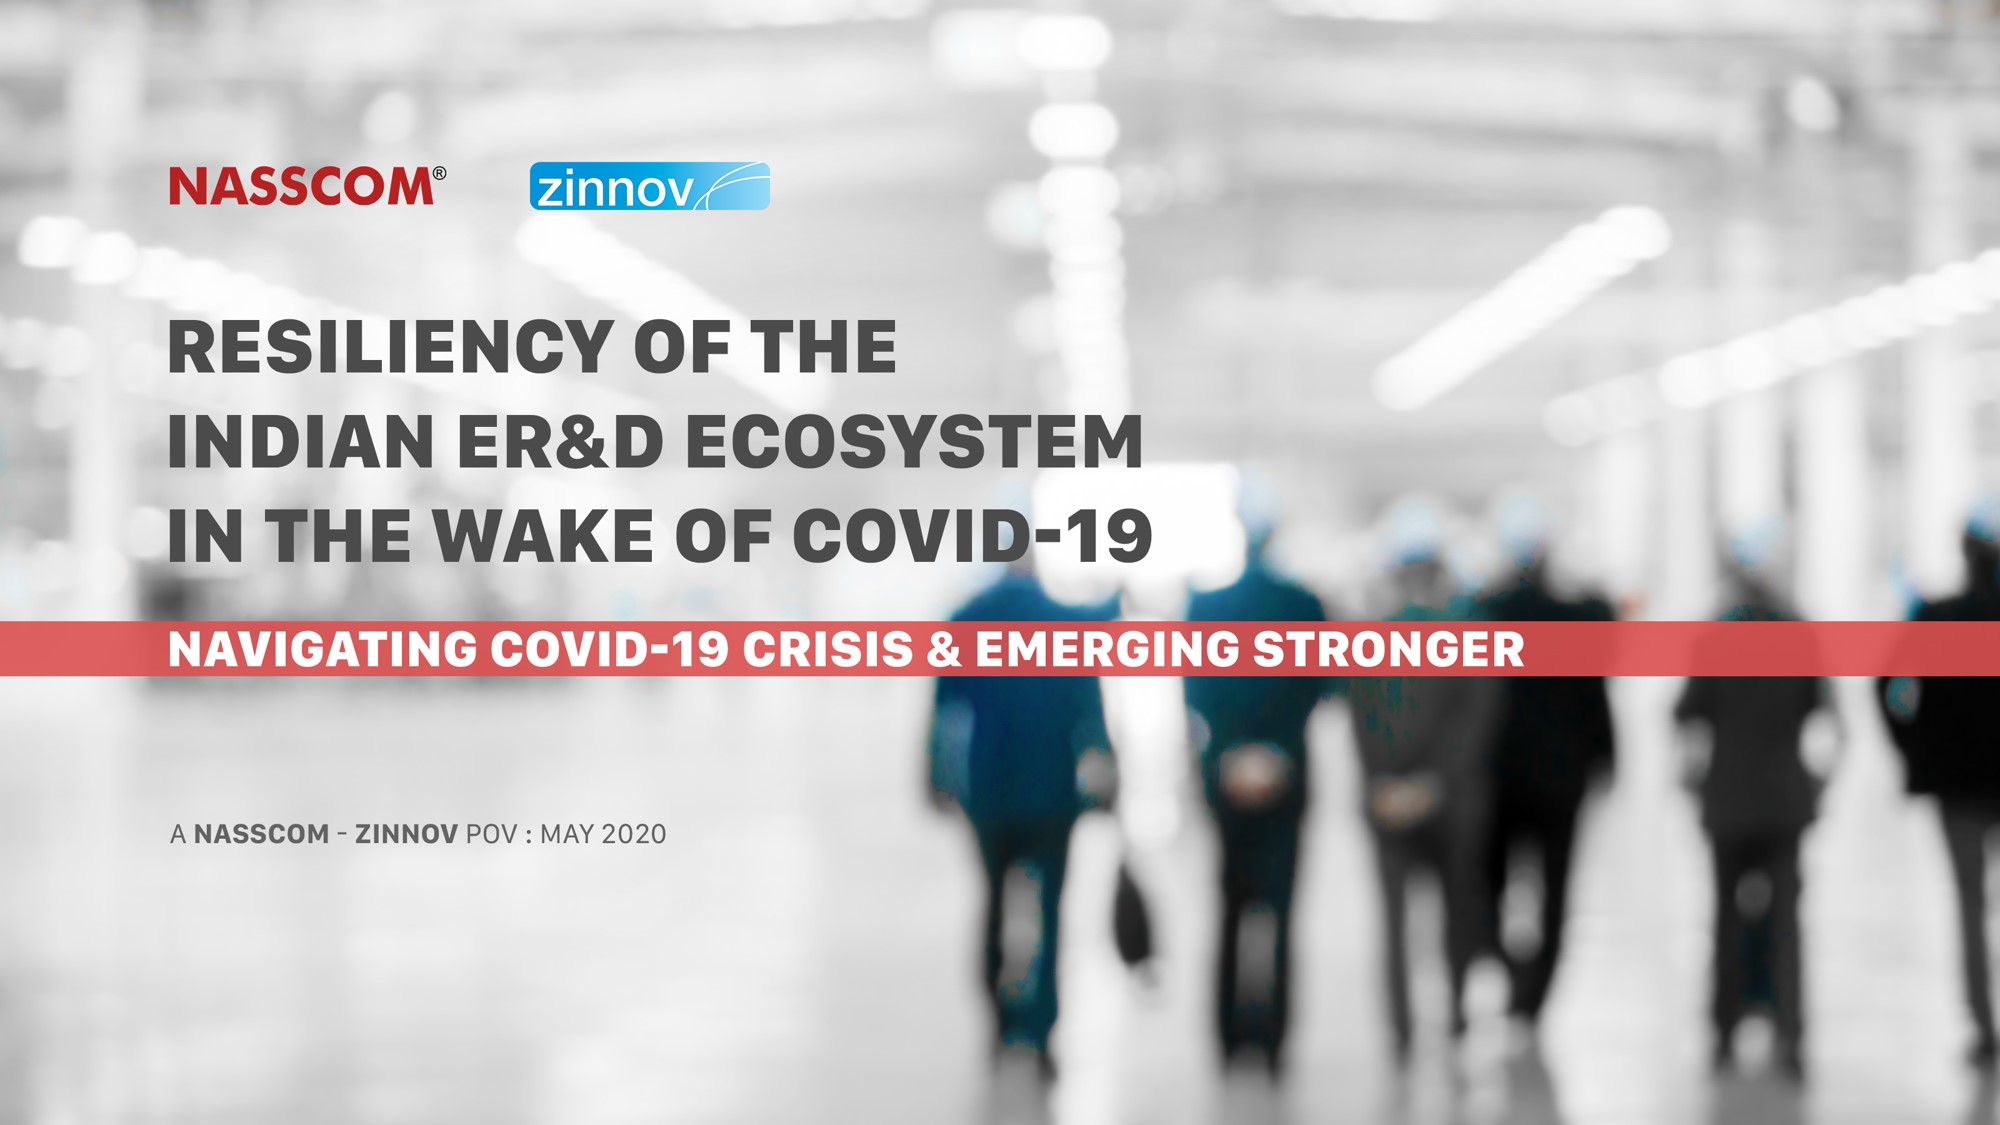 NASSCOM-Zinnov-Resiliency of the Indian ER&D Ecosystem during COVID-19 – May 2020